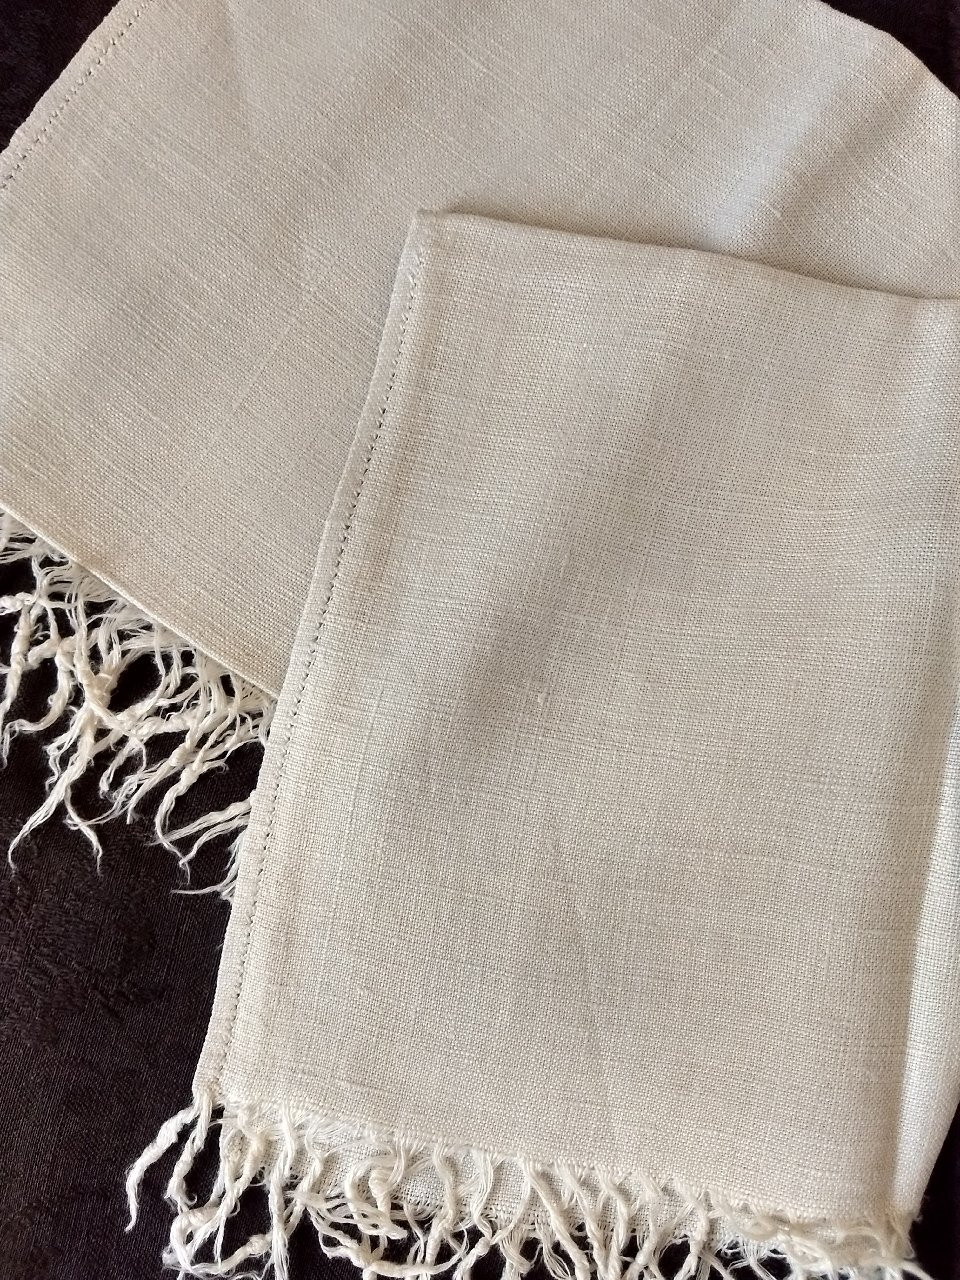 Antique Hand Woven Linen Homespun Towel Fringe With Ancestory  History